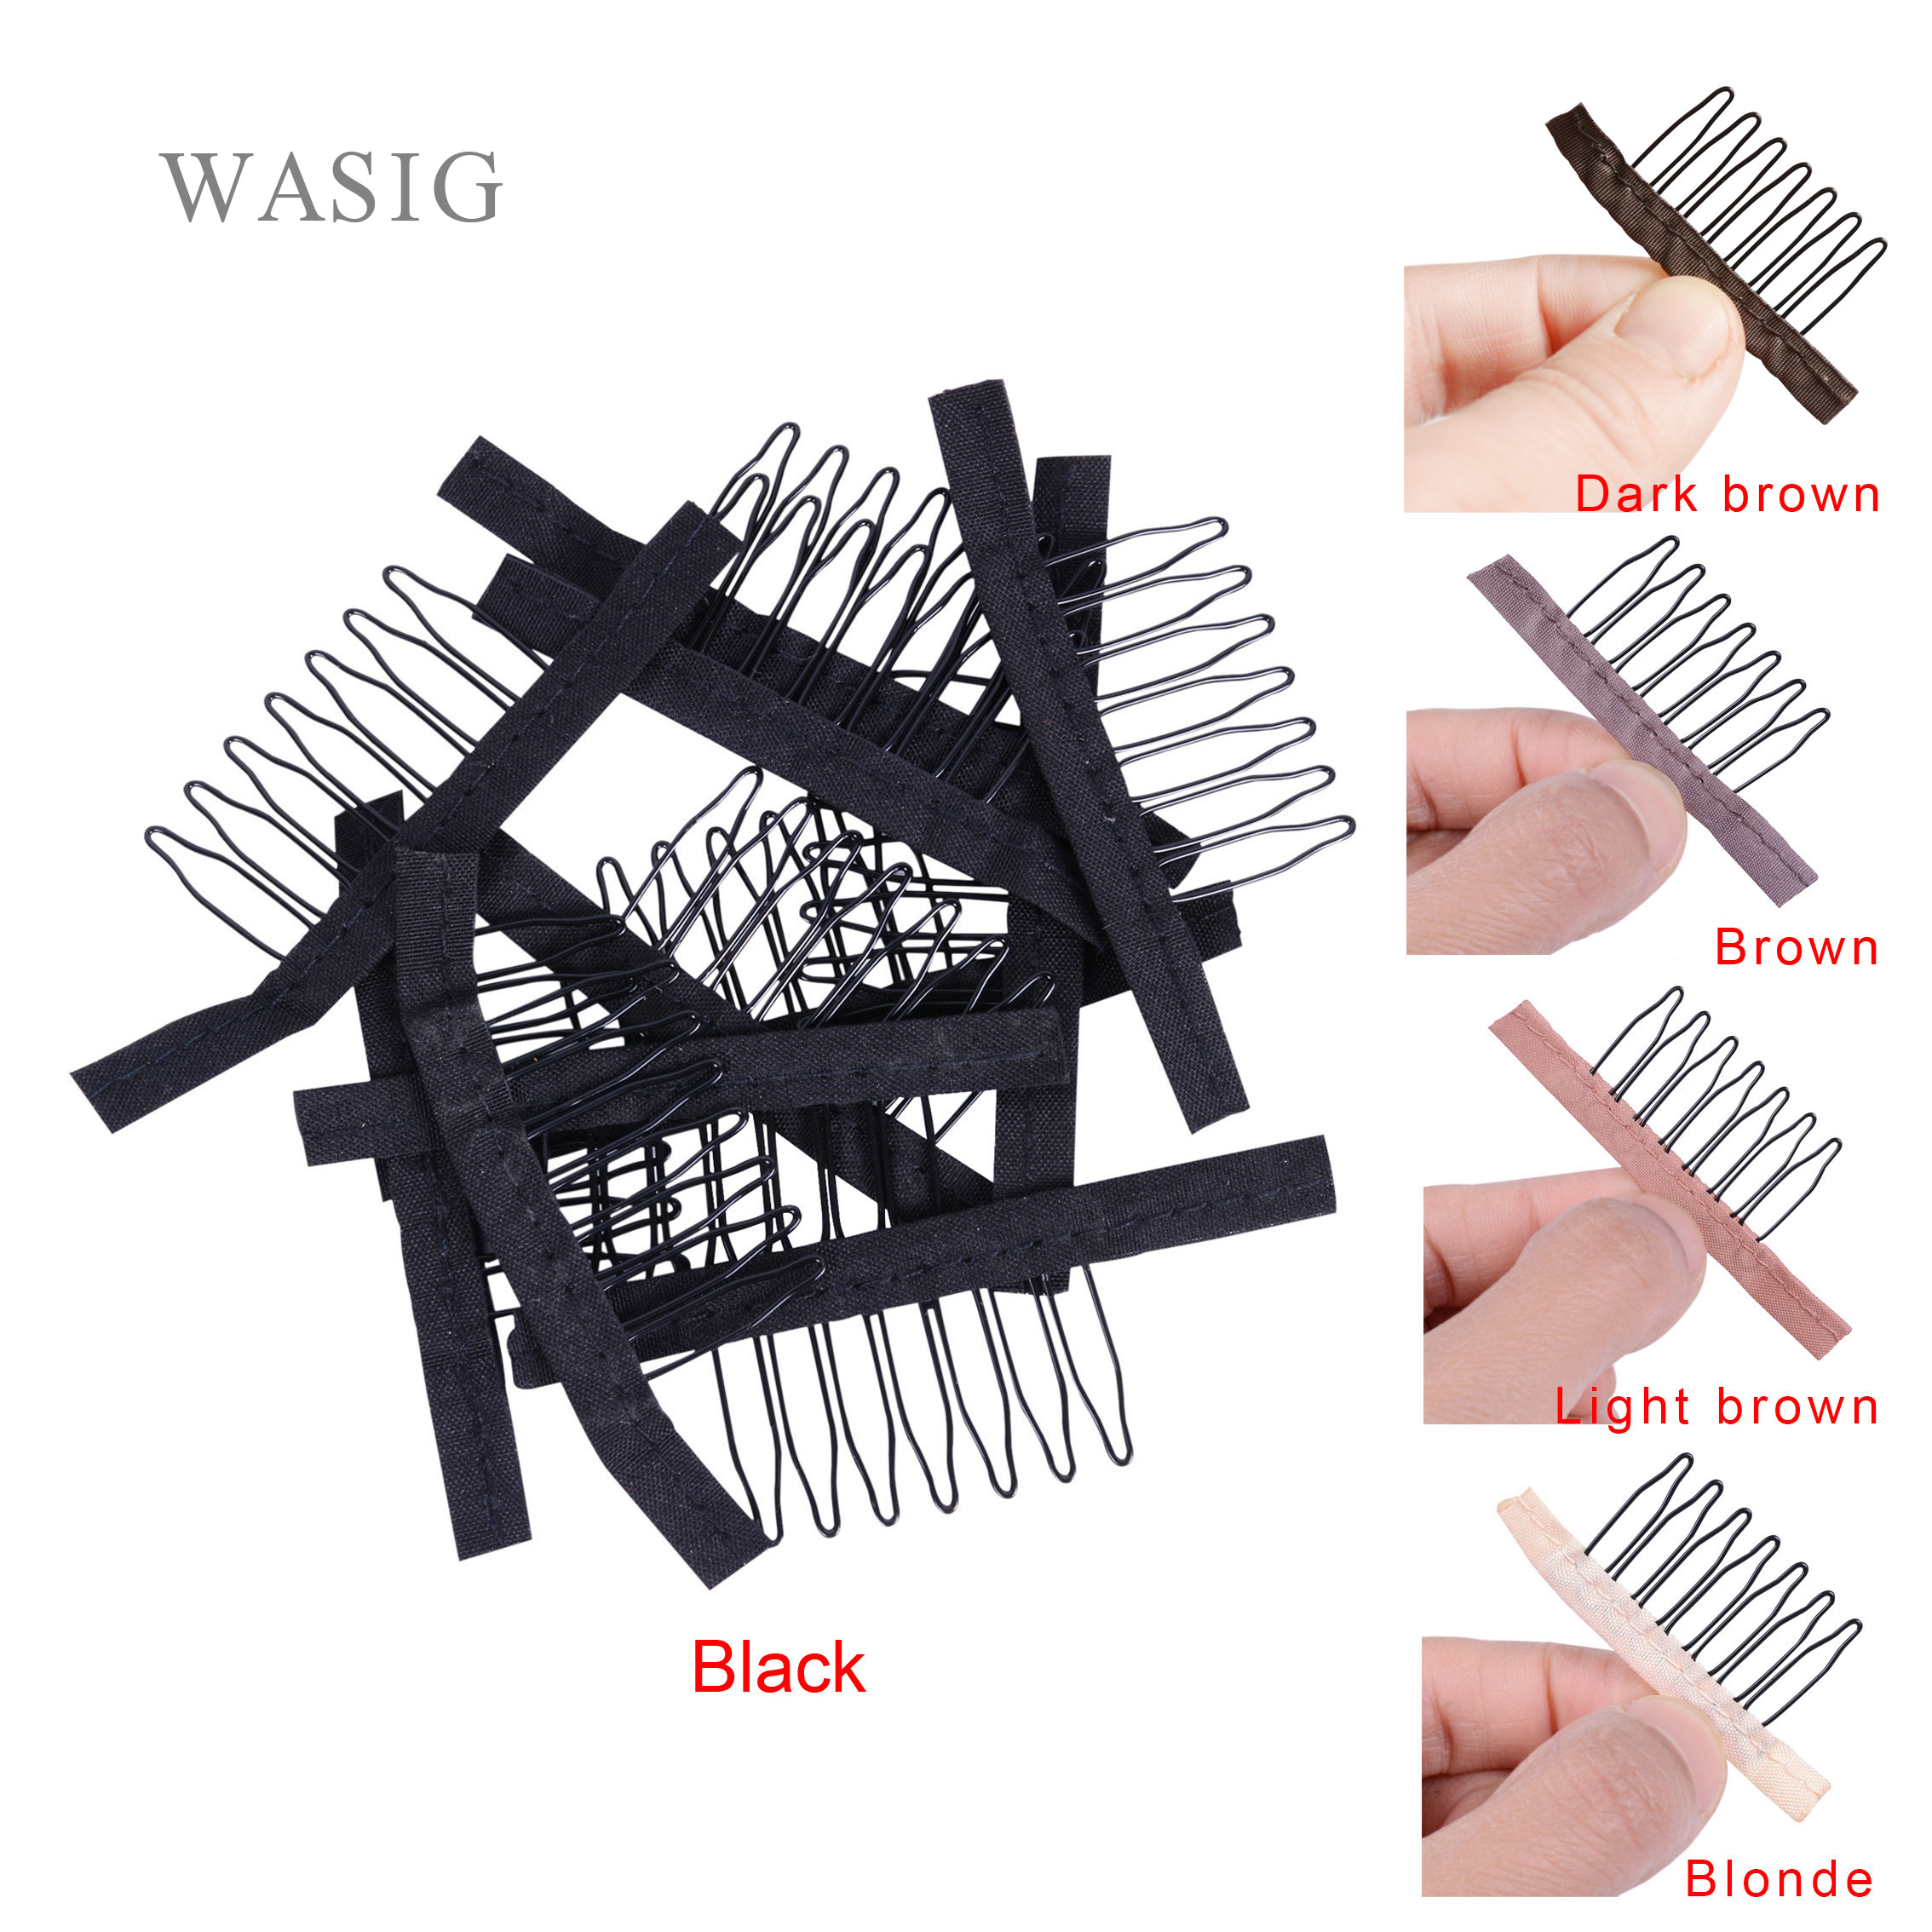 5 Colors Lace Wig Clips Steel Tooth Polyester Durable Cloth Wig Combs For Hairpiece Caps Wig Accessories Tools 30pcs/lot